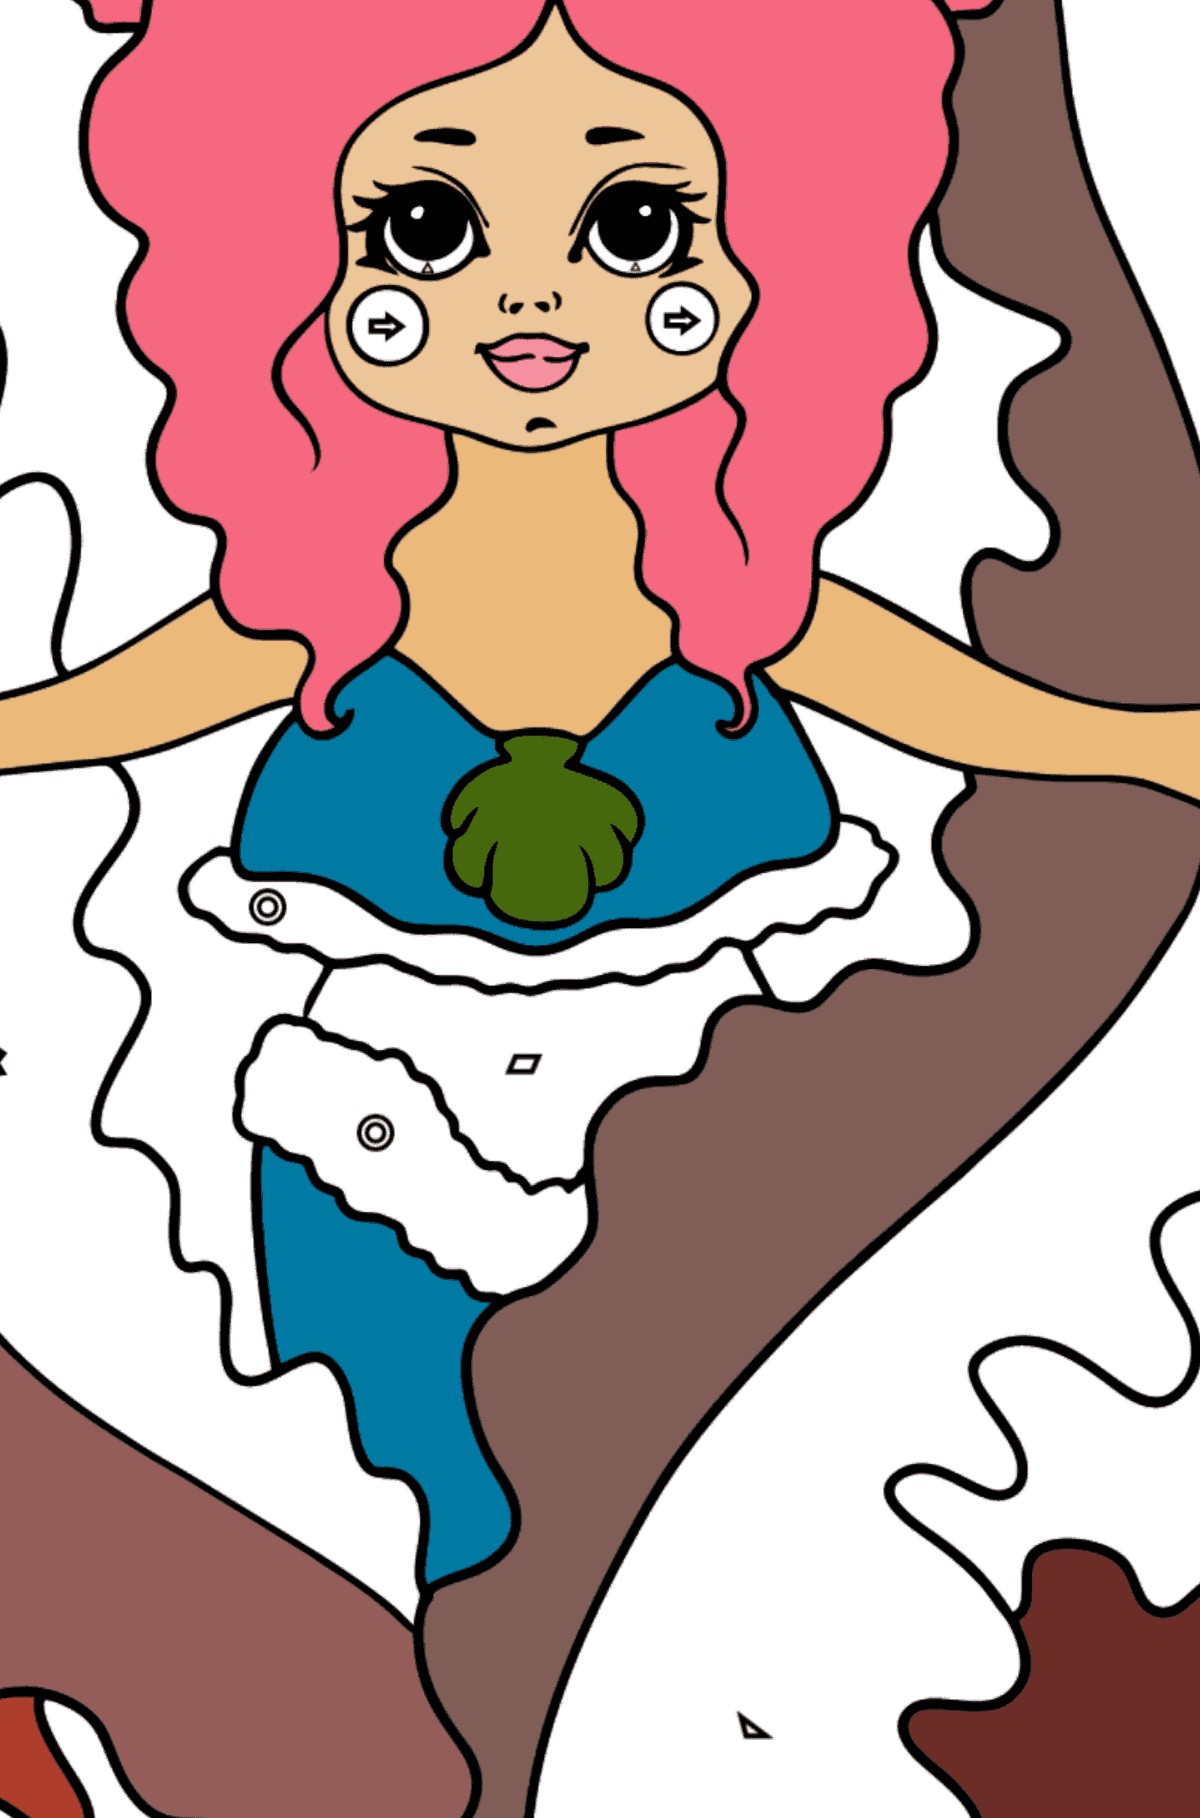 Mermaid and Red Algae coloring page - Coloring by Geometric Shapes for Kids